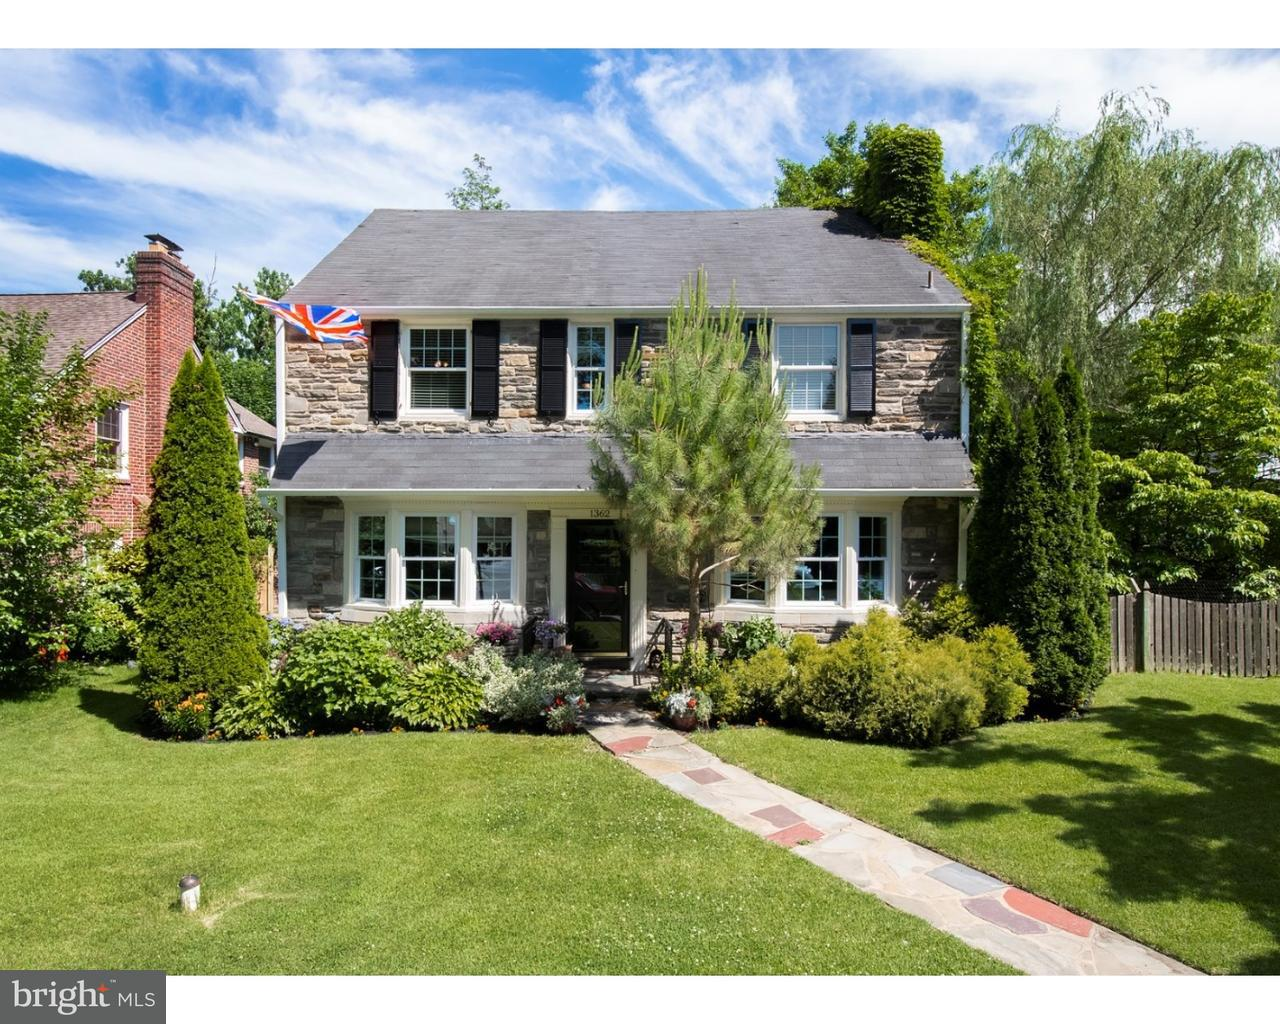 1362 Overbrook Road Wynnewood, PA 19096